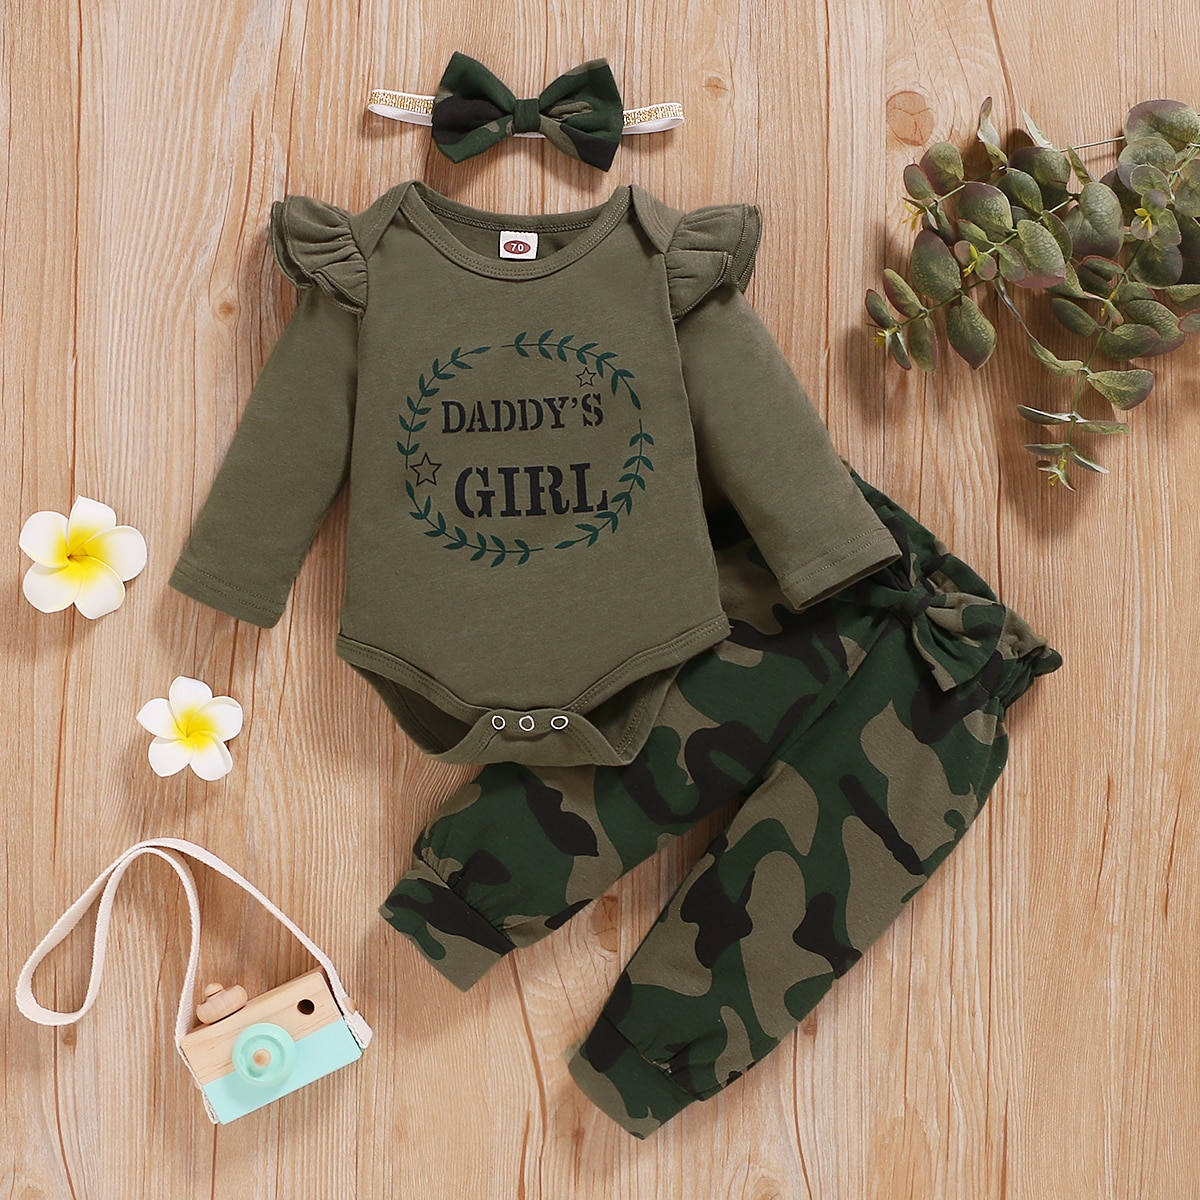 fall winter long sleeves pants cotton set grey stripes rufflepumpkin print pant baby kids wear girls clothing with accessory bow Fall Baby Clothes For Girls  12 Month Baby Girl Clothes Long Sleeve Letters Print Comfy Camflage Pants Headband Kids Outfits Set